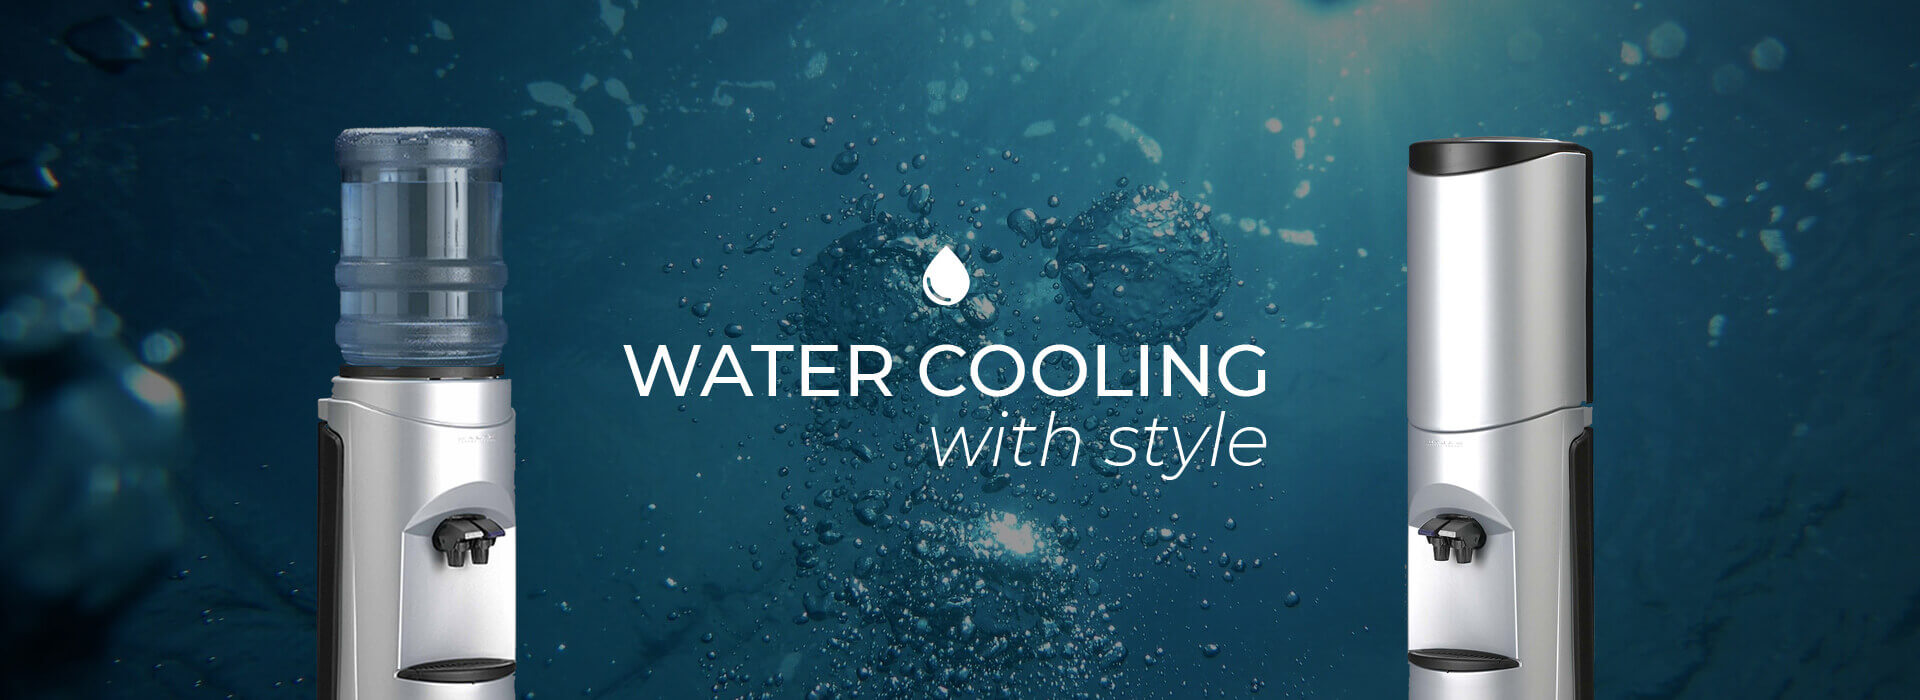 WATER COOLING with style